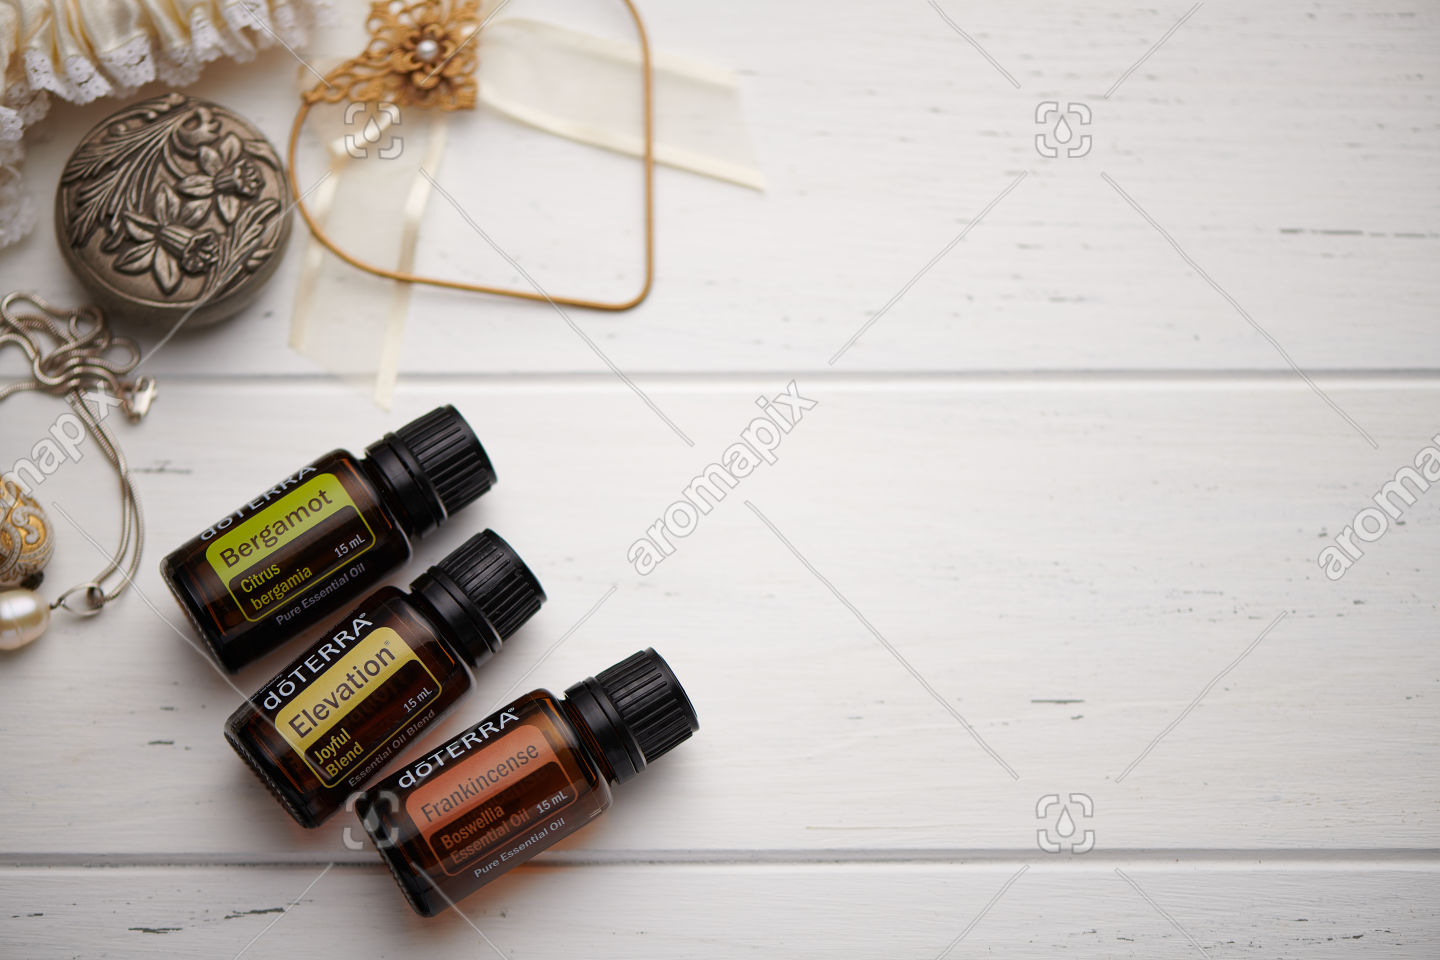 doTERRA Bergamot, Elevation and Frankincense on white background